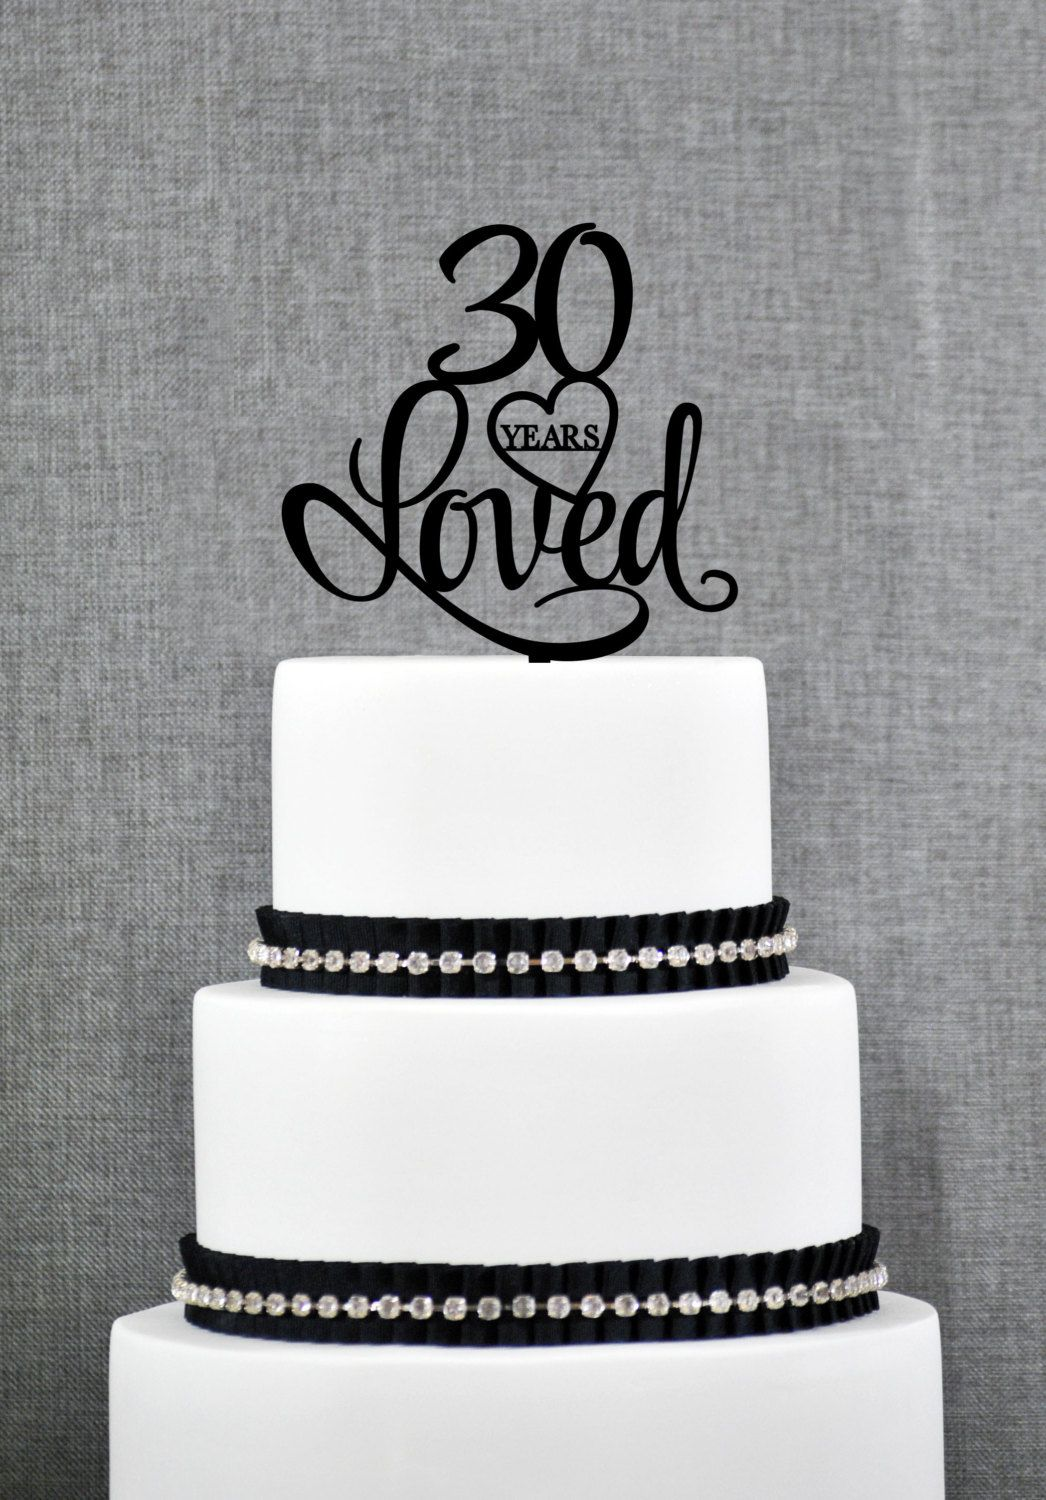 New To ChicagoFactory On Etsy 30 Years Loved Cake Topper Classy 30th Birthday Anniversary S244 1500 USD